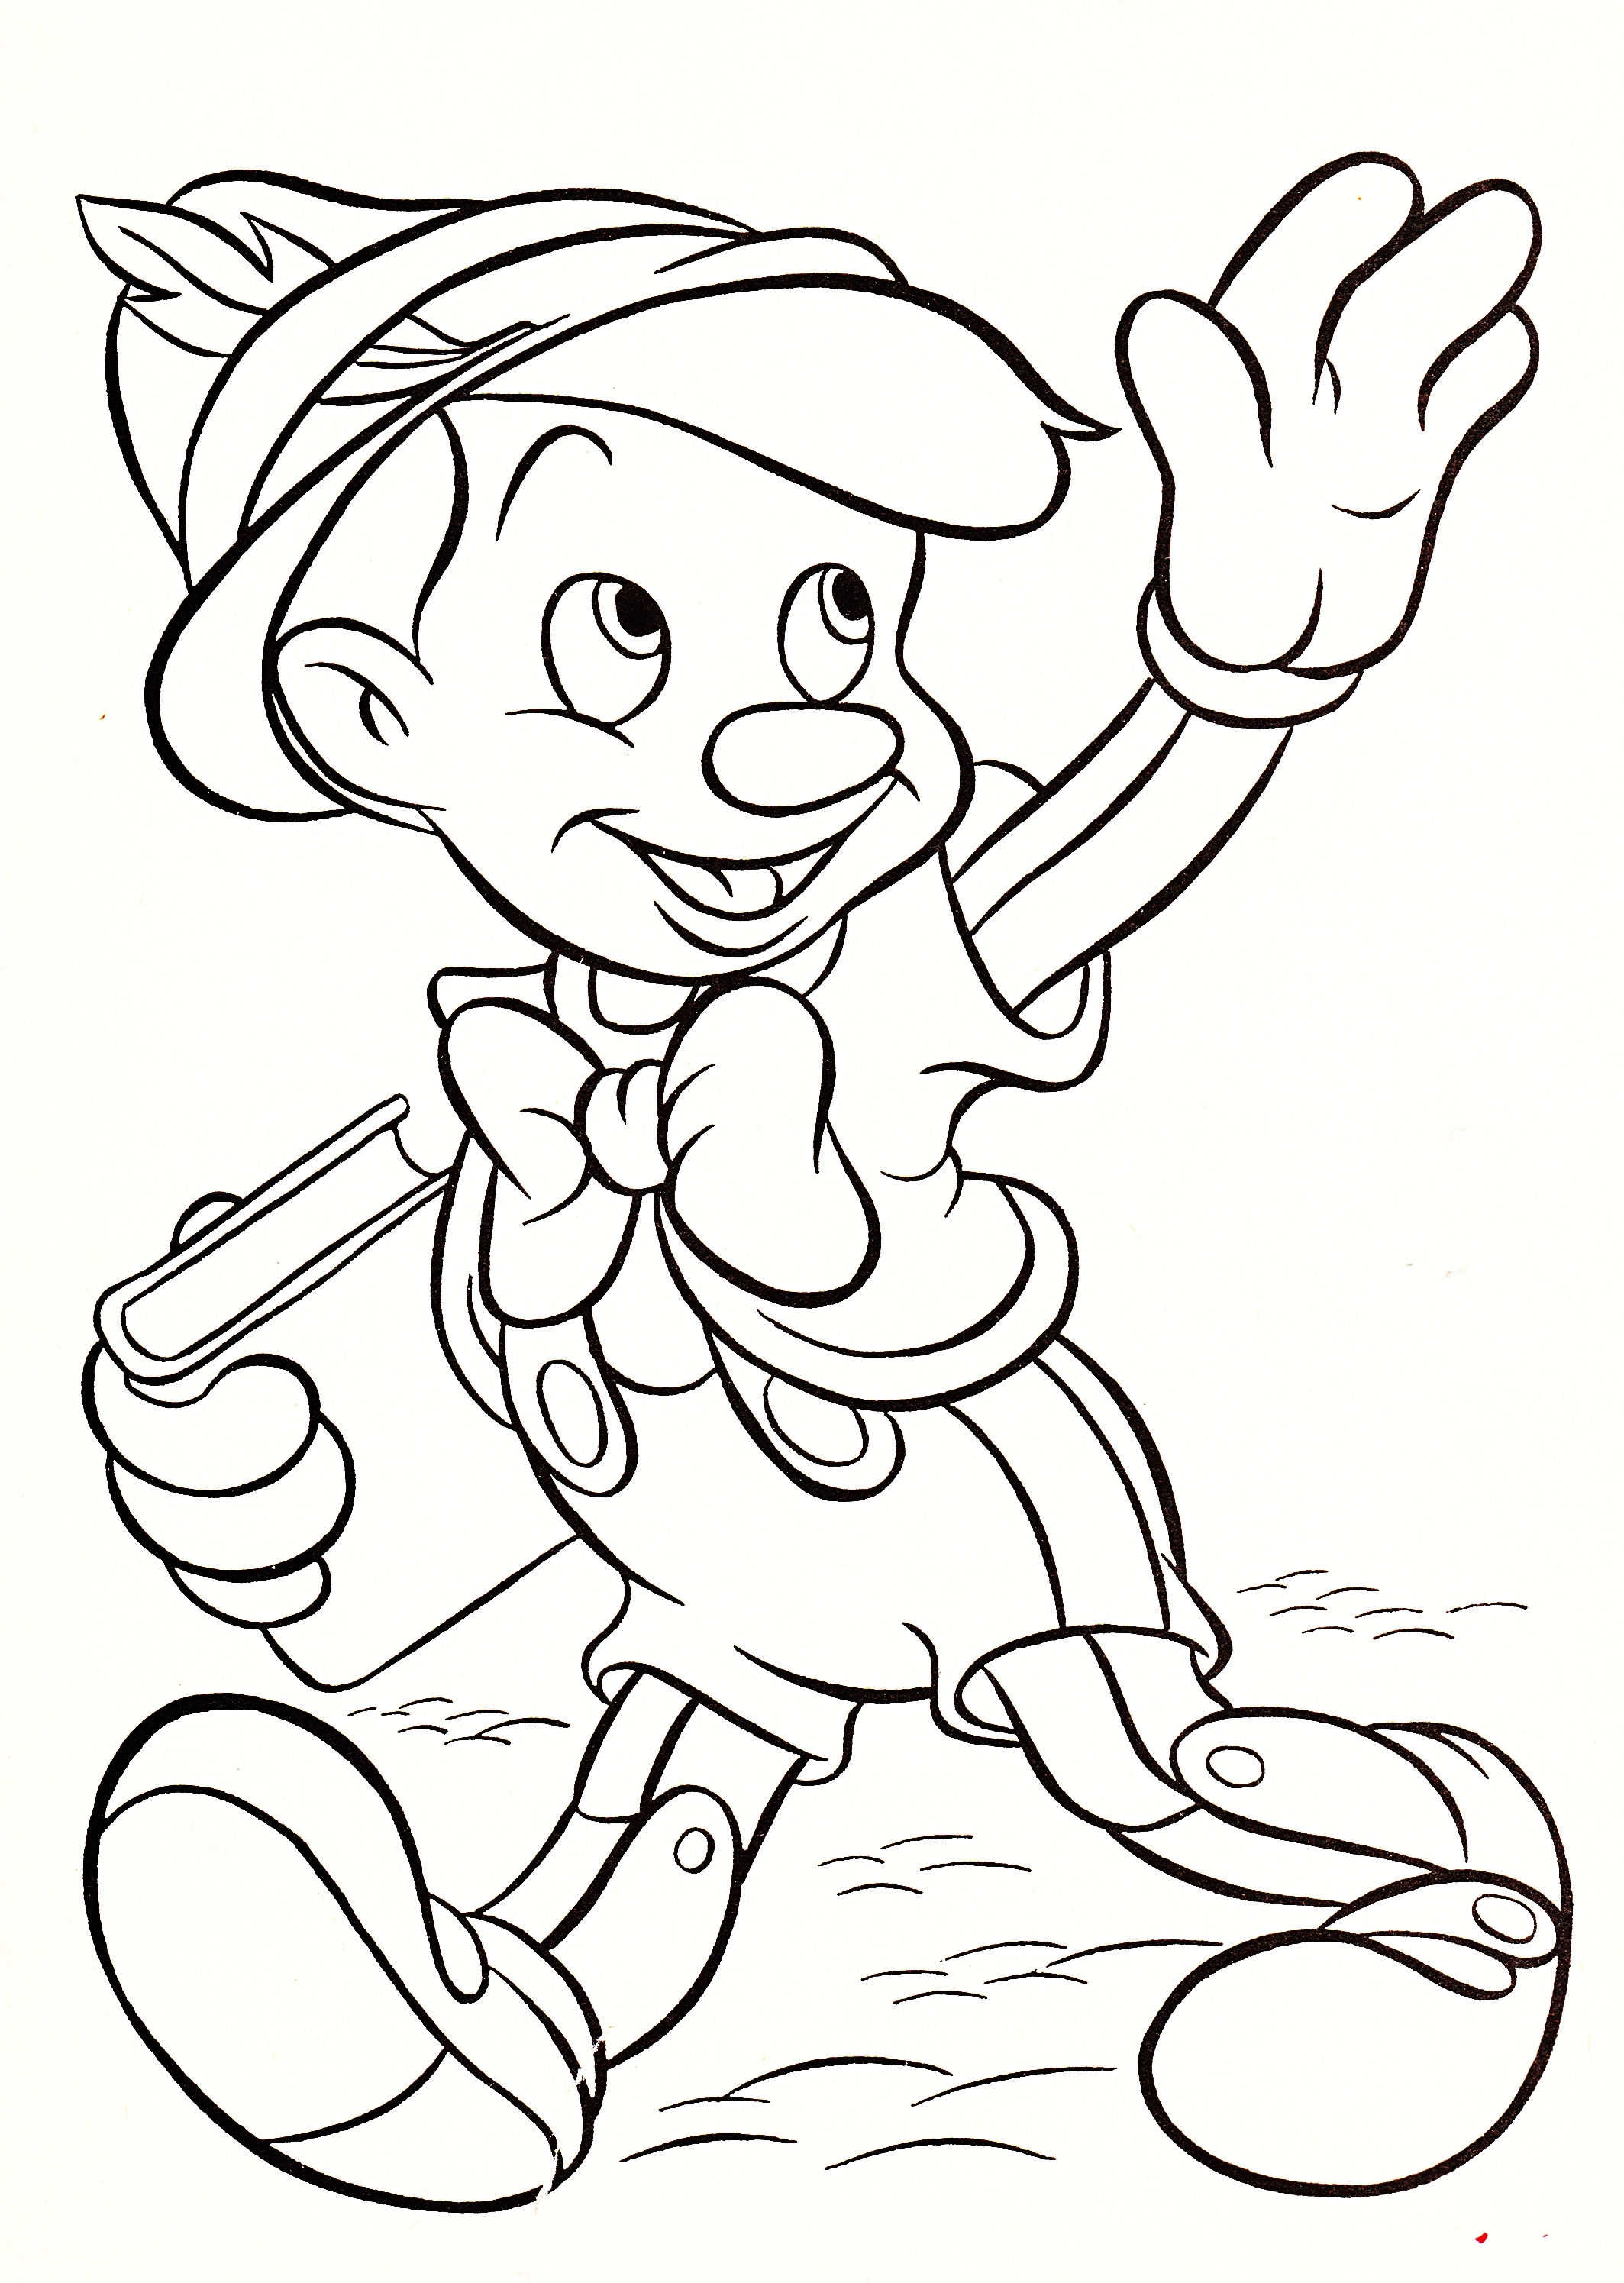 Walt Disney Coloring Pages - Pinocchio